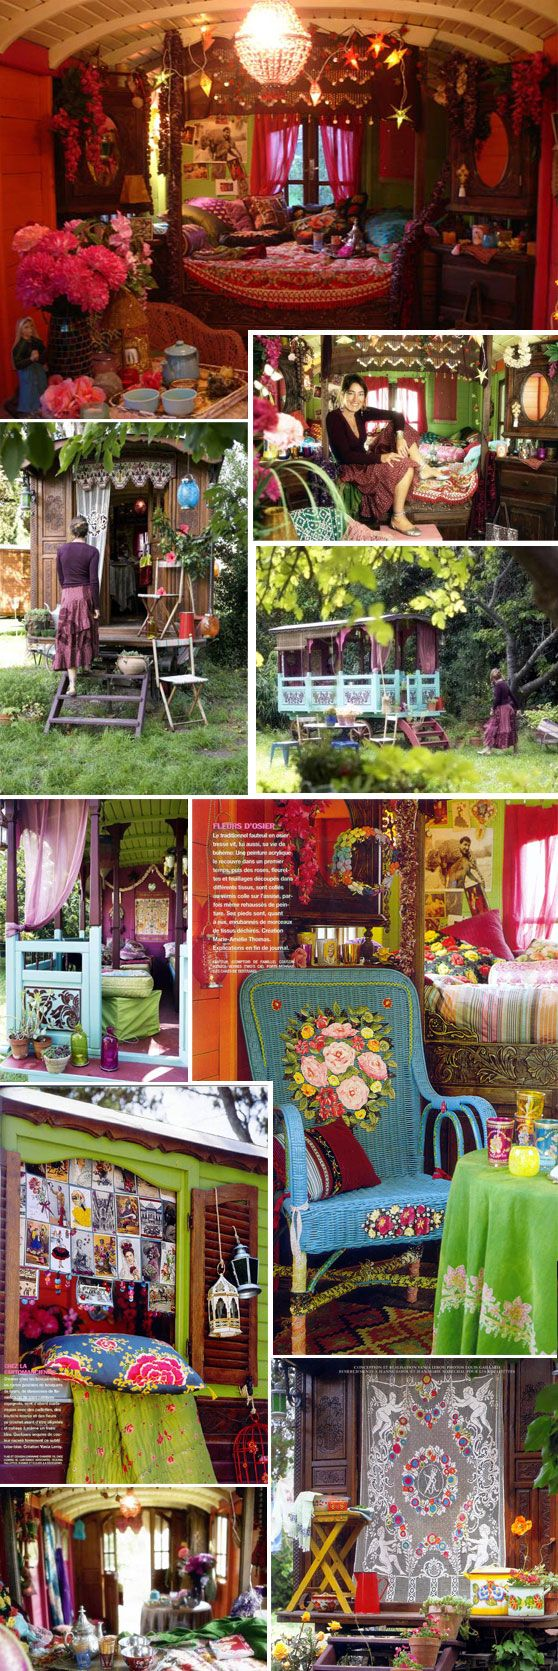 "Jeanne Bayol restores and decorates old gypsy caravans. ""Les Roulottes : Une invitation au voyage"""